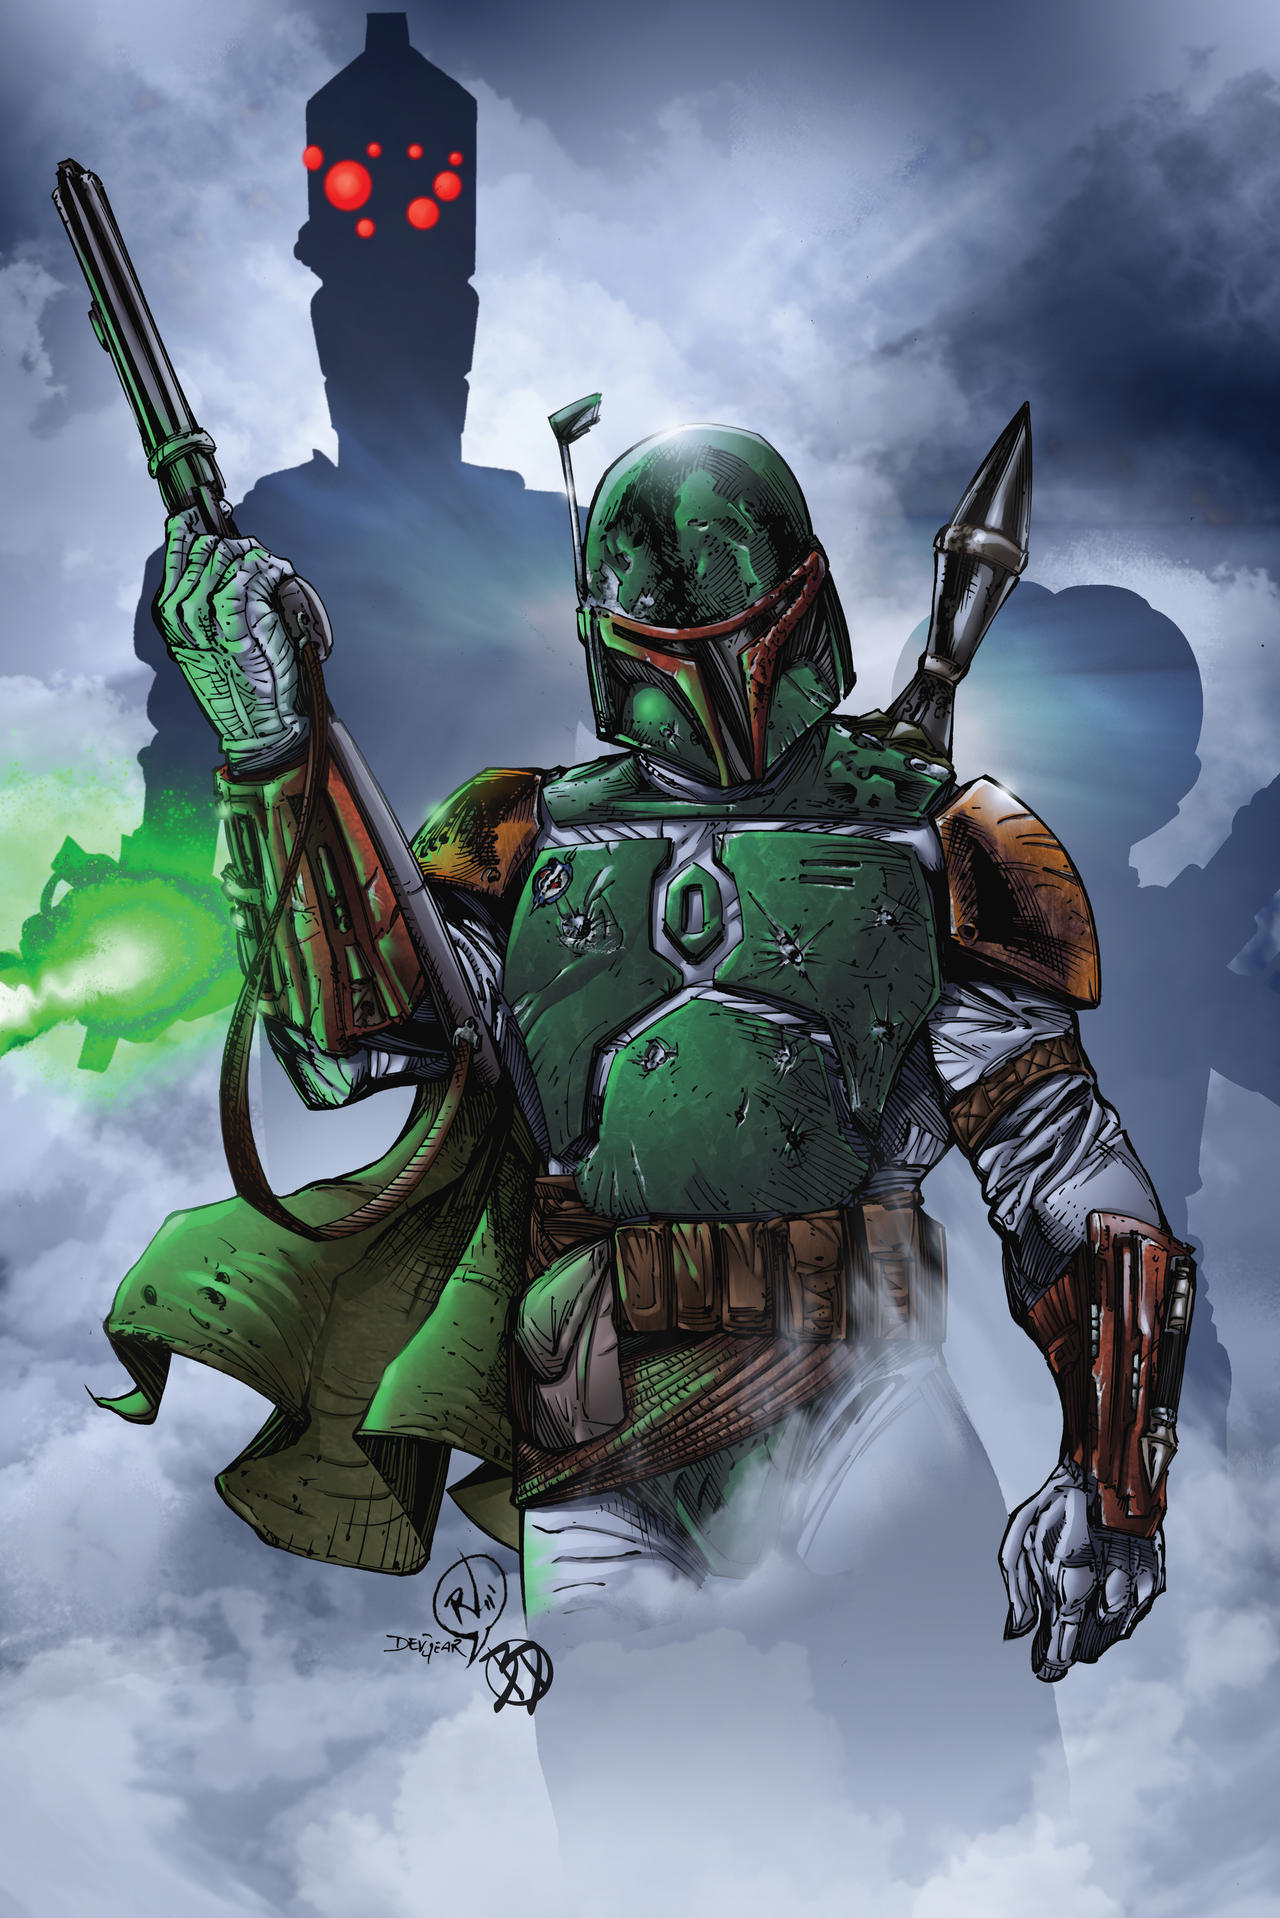 Boba Fett and the Bounty Hunters by BDStevens on DeviantArt